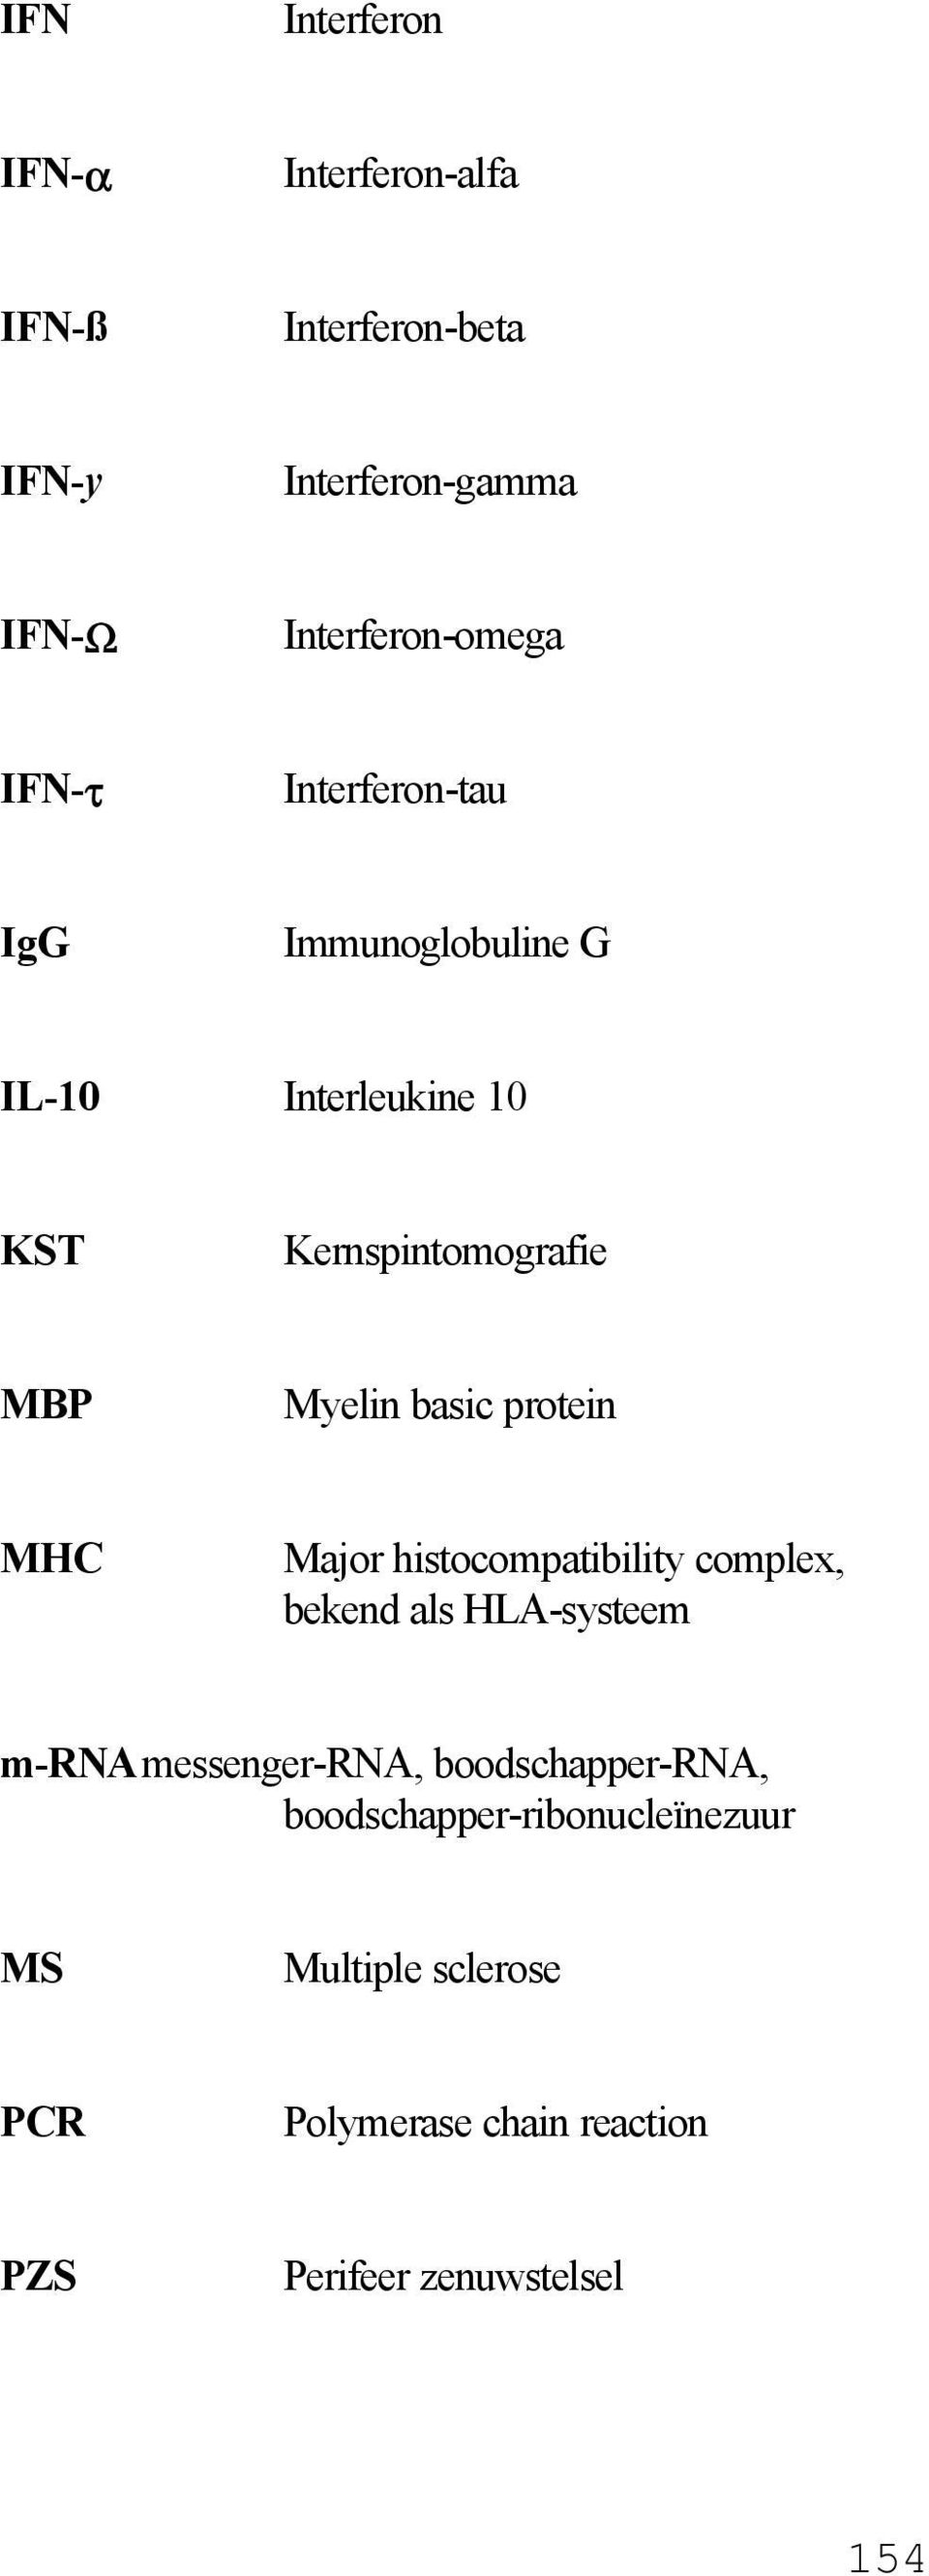 protein MHC Major histocompatibility complex, bekend als HLA-systeem m-rnamessenger-rna, boodschapper-rna,